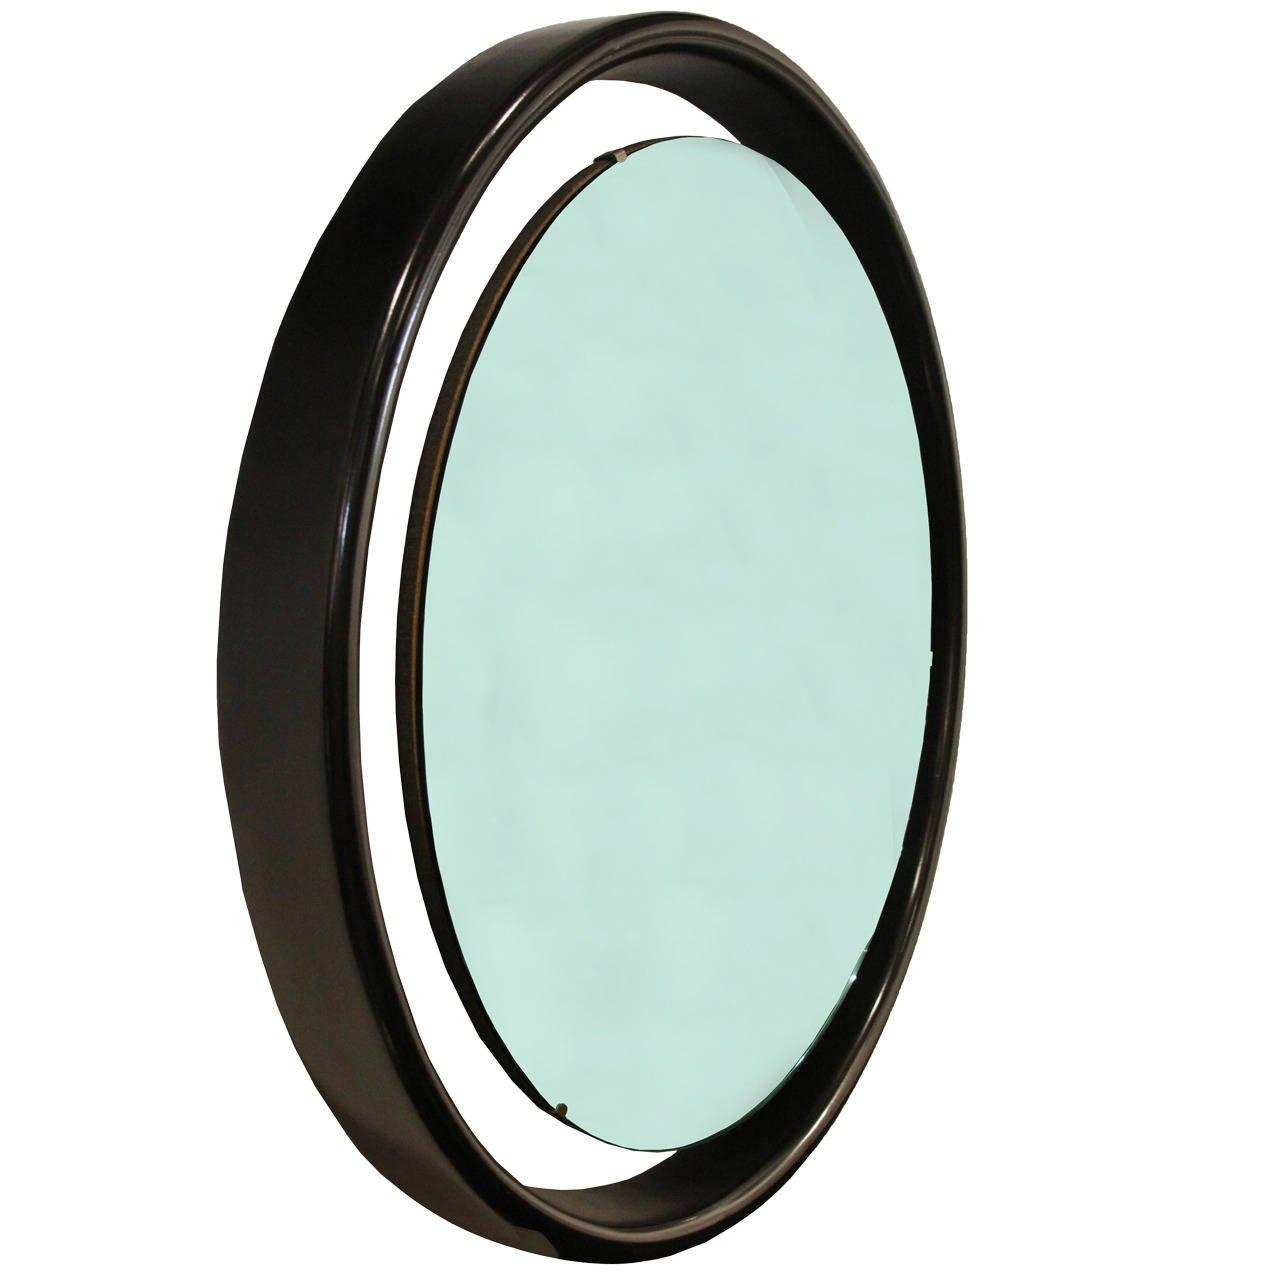 Floating Round Mirror With Black Frame For Sale At 1Stdibs With Regard To Round Black Mirror (View 15 of 20)